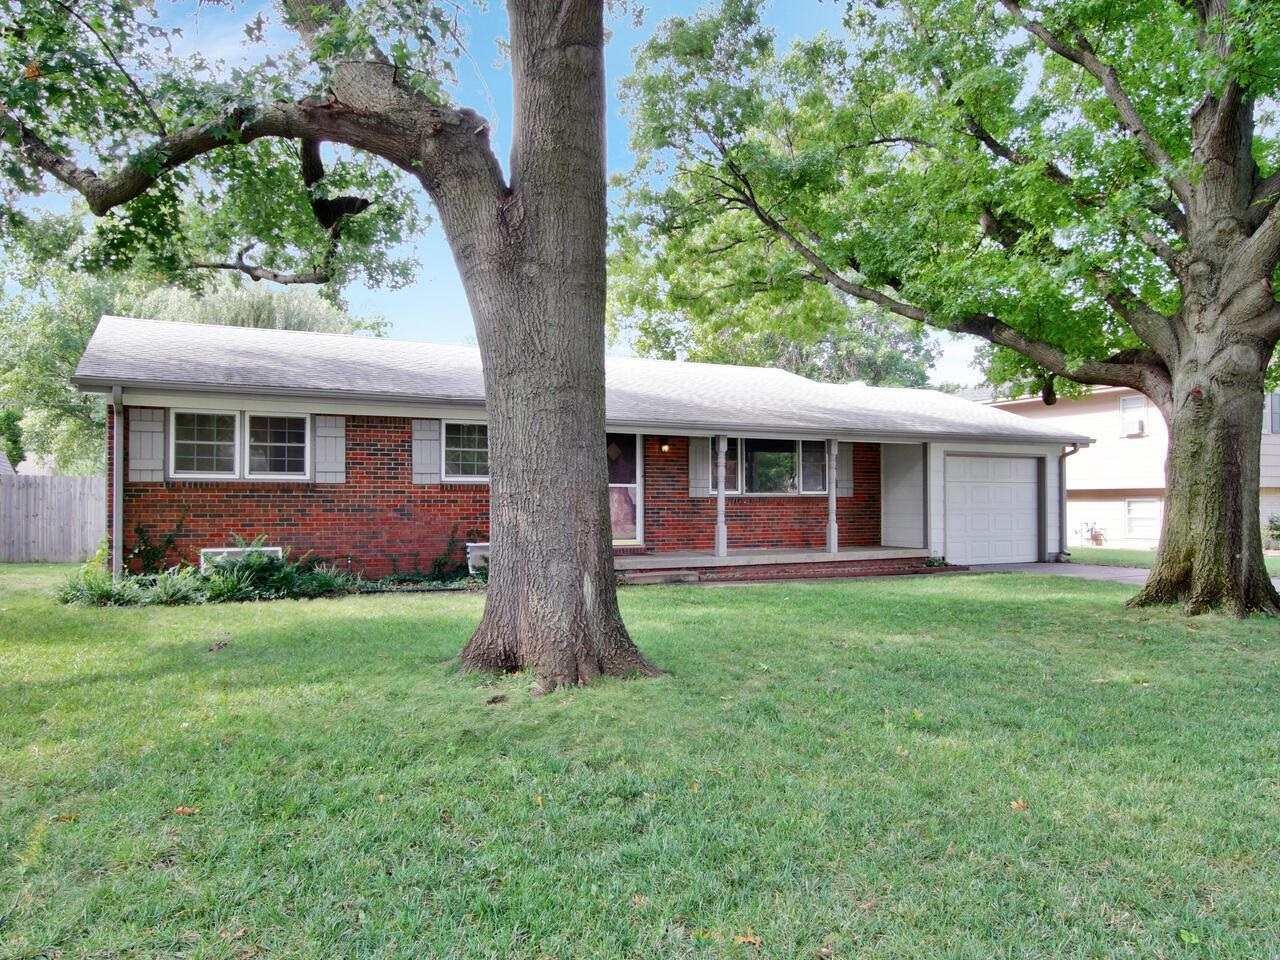 Welcome Home! This impressive ranch home has loads of appeal located in a desirable neighborhood jus